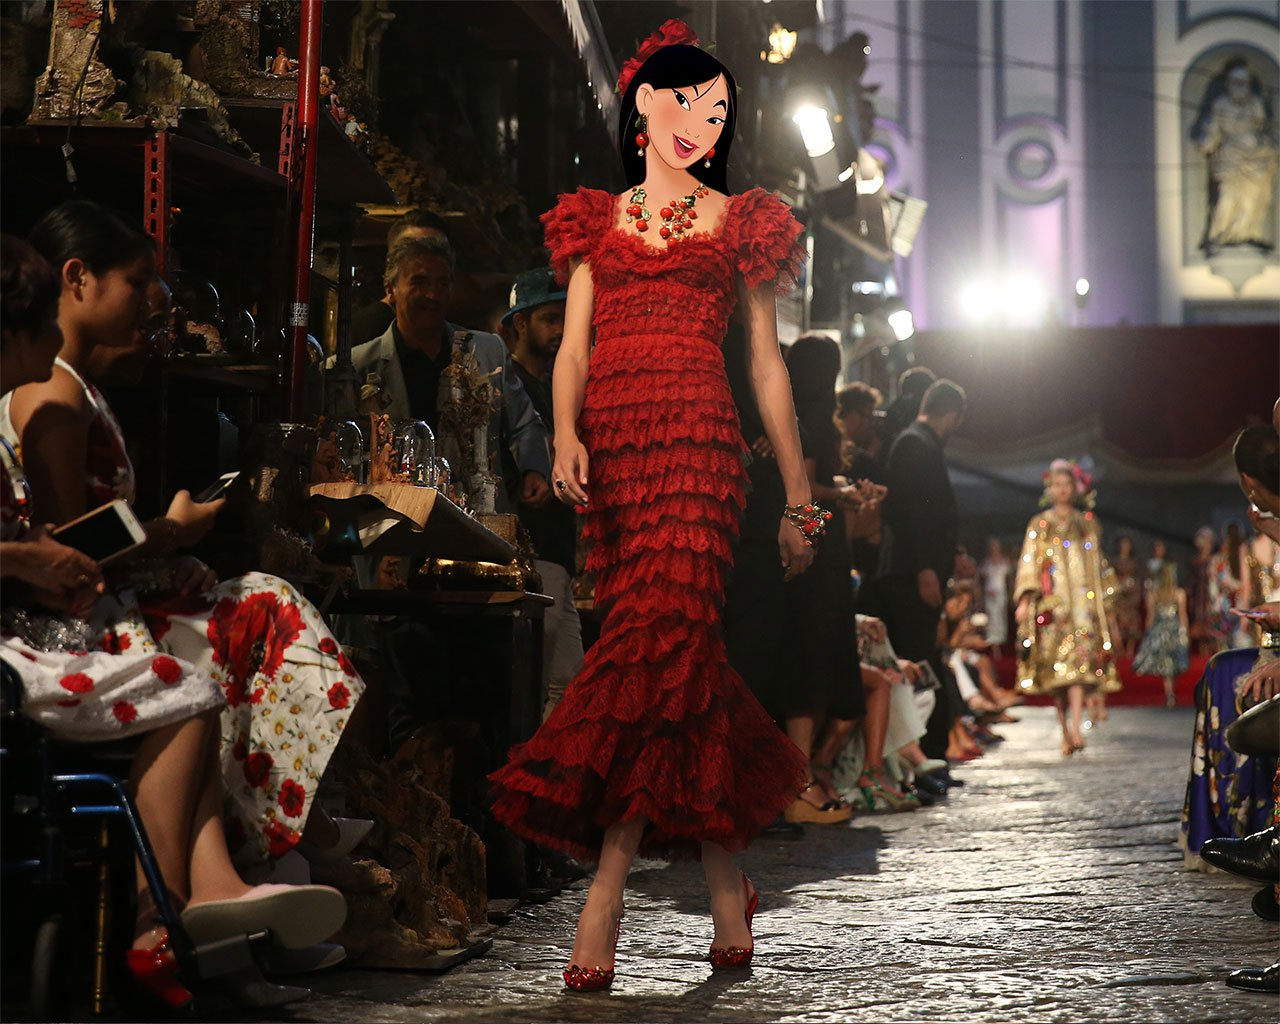 f6_animation_in_reality_by_gregory_masouras_tabitha_simmons_as_mulan_dolcegabbana_photo_taken_by_fashiontomax_yatzer